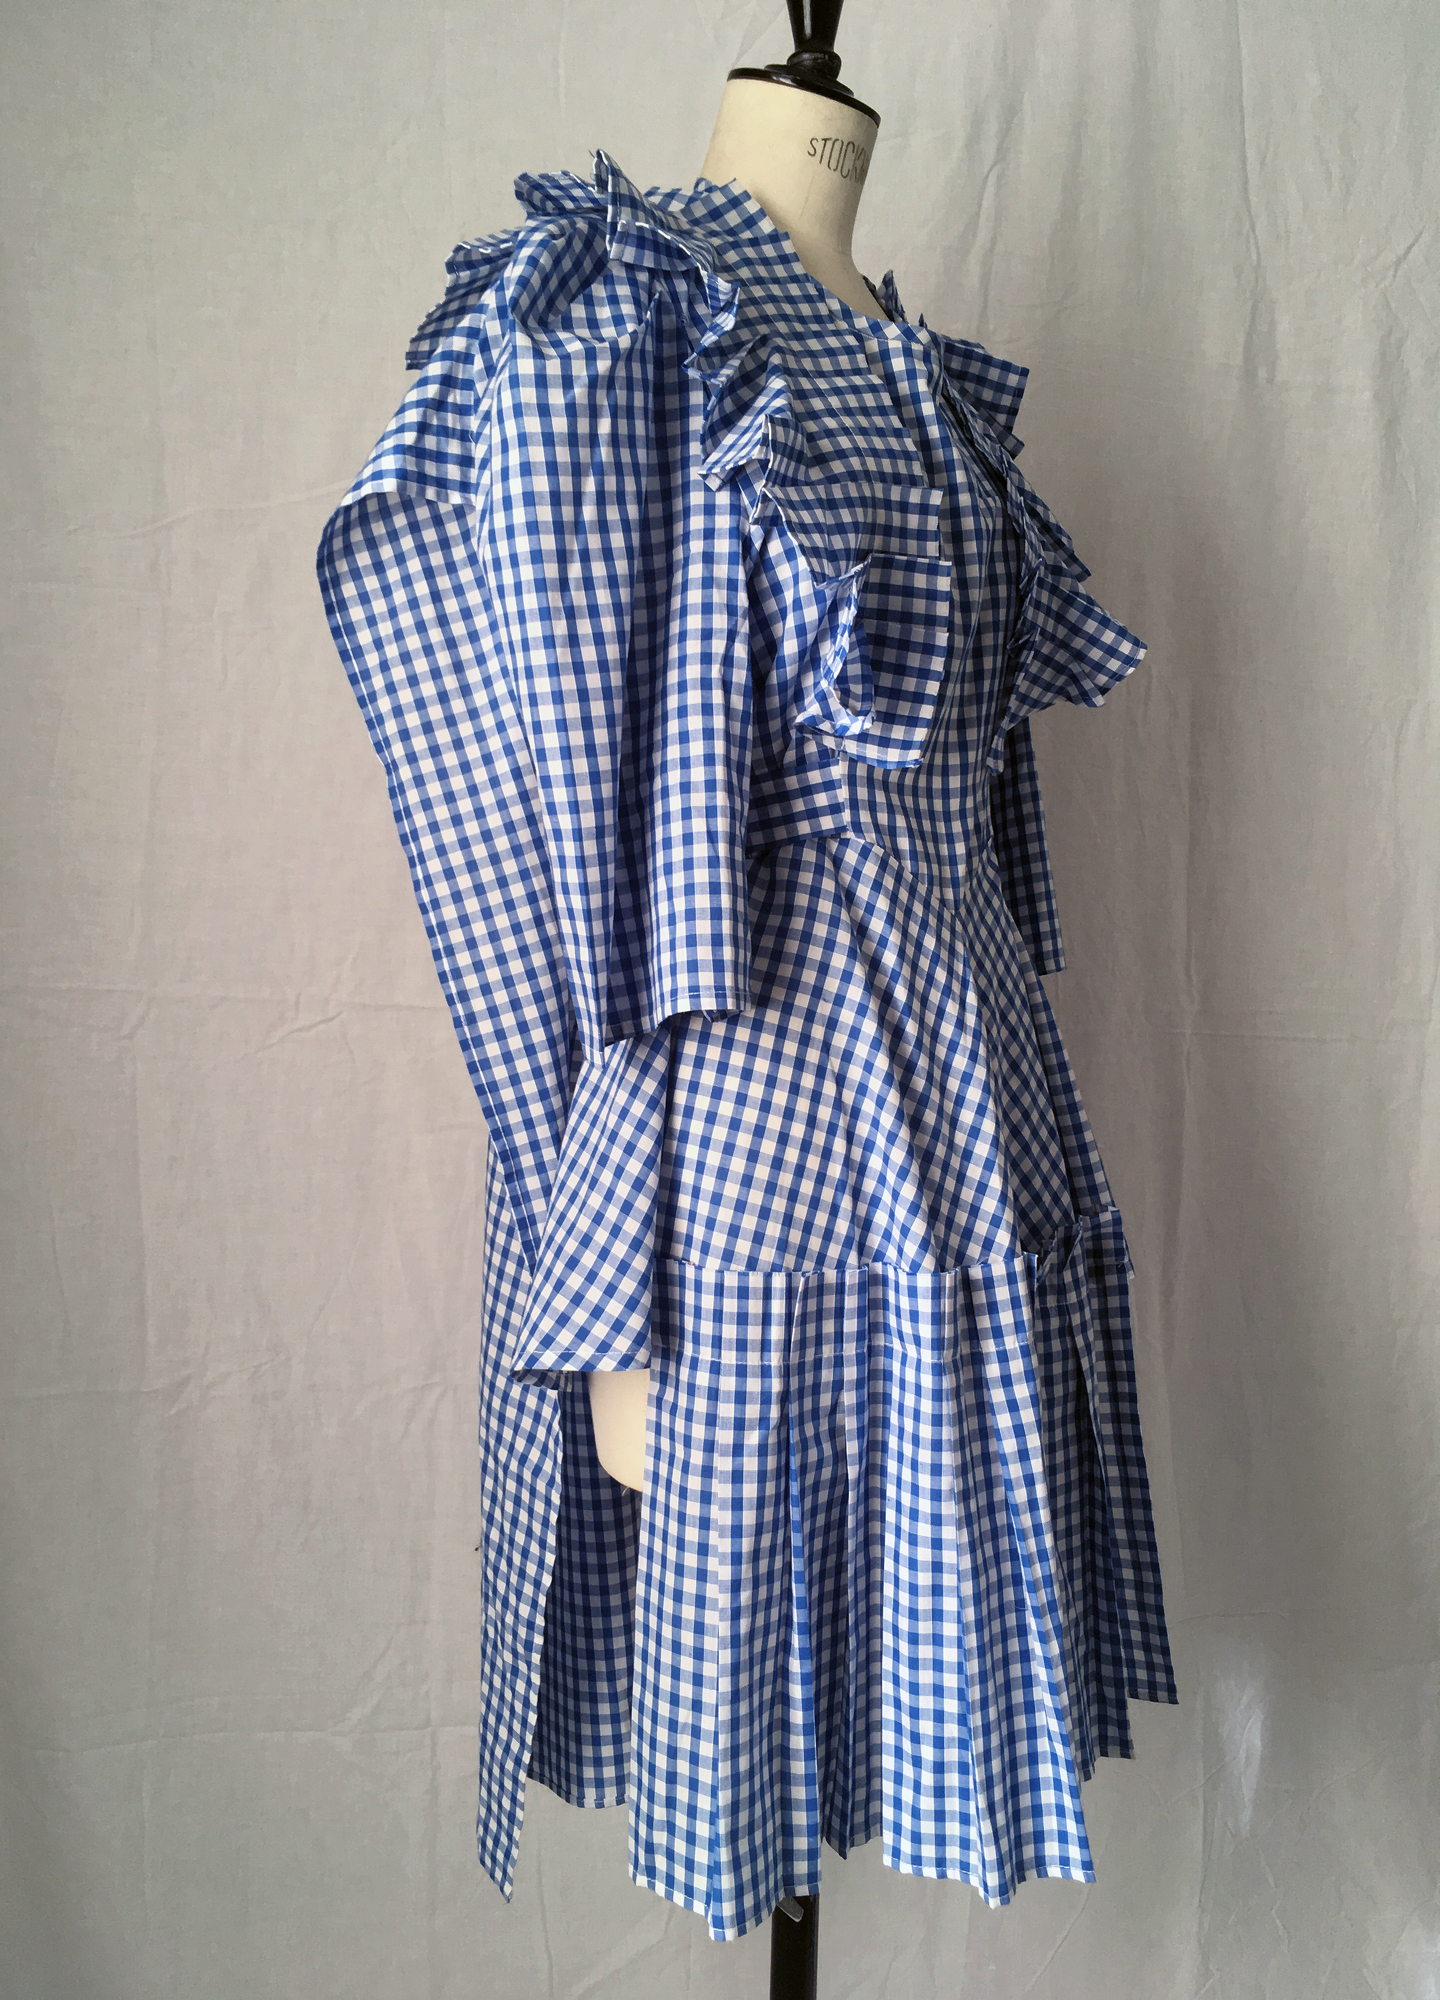 DRESS LTD Adaptable Flat Pack HALF APRON DOROTHY Deconstructed Prairie Dress #dressltd